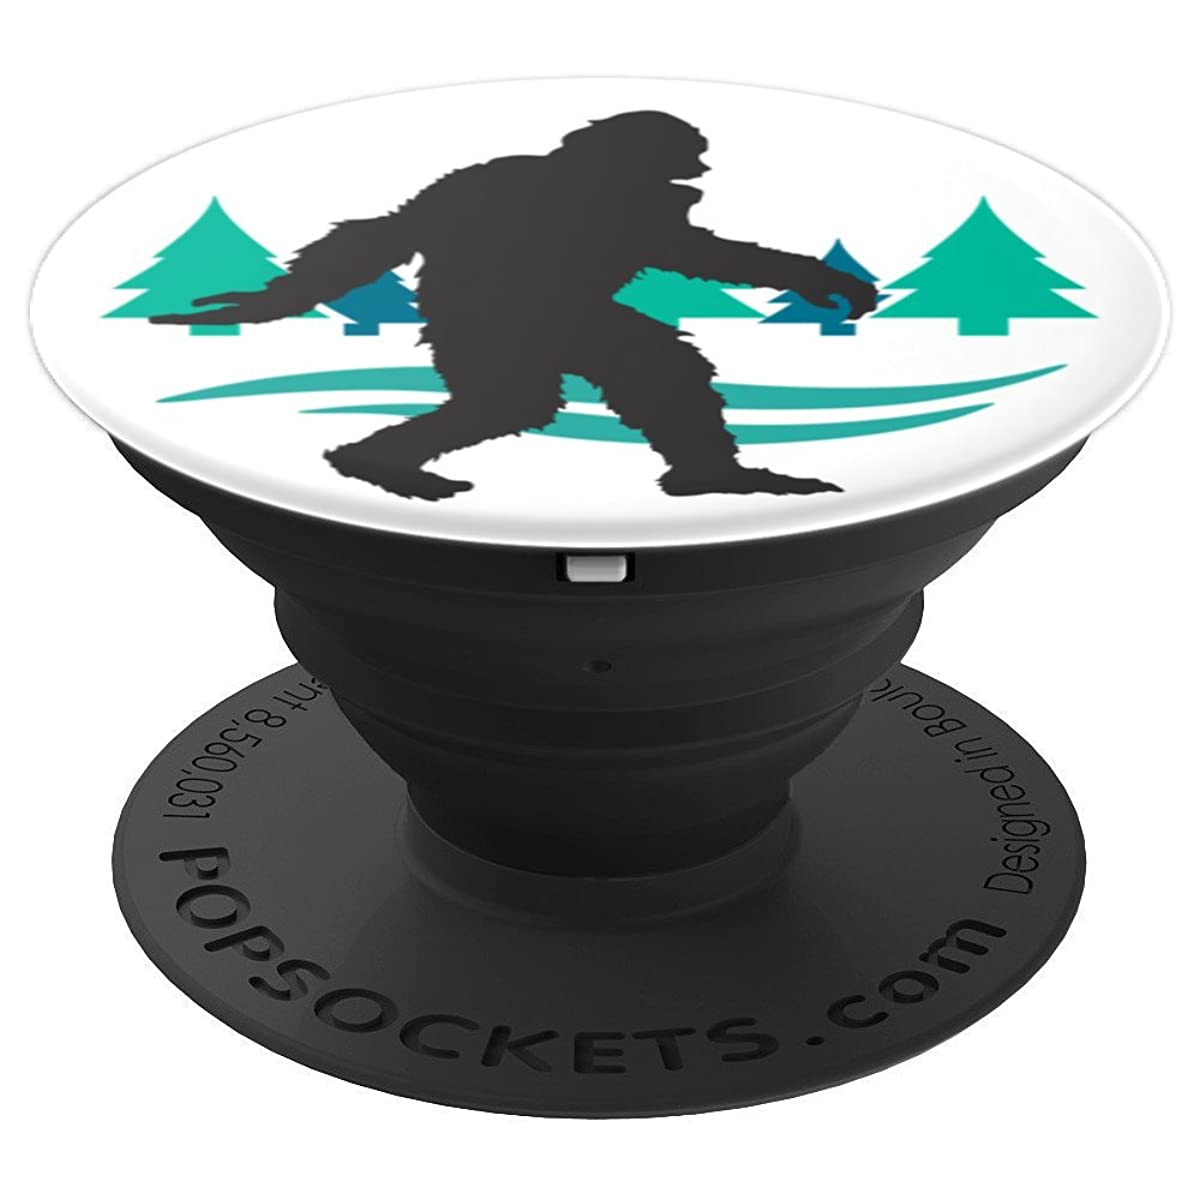 Bigfoot in the Woods Camping Evergreen Trees Green and Blue - PopSockets Grip and Stand for Phones and Tablets